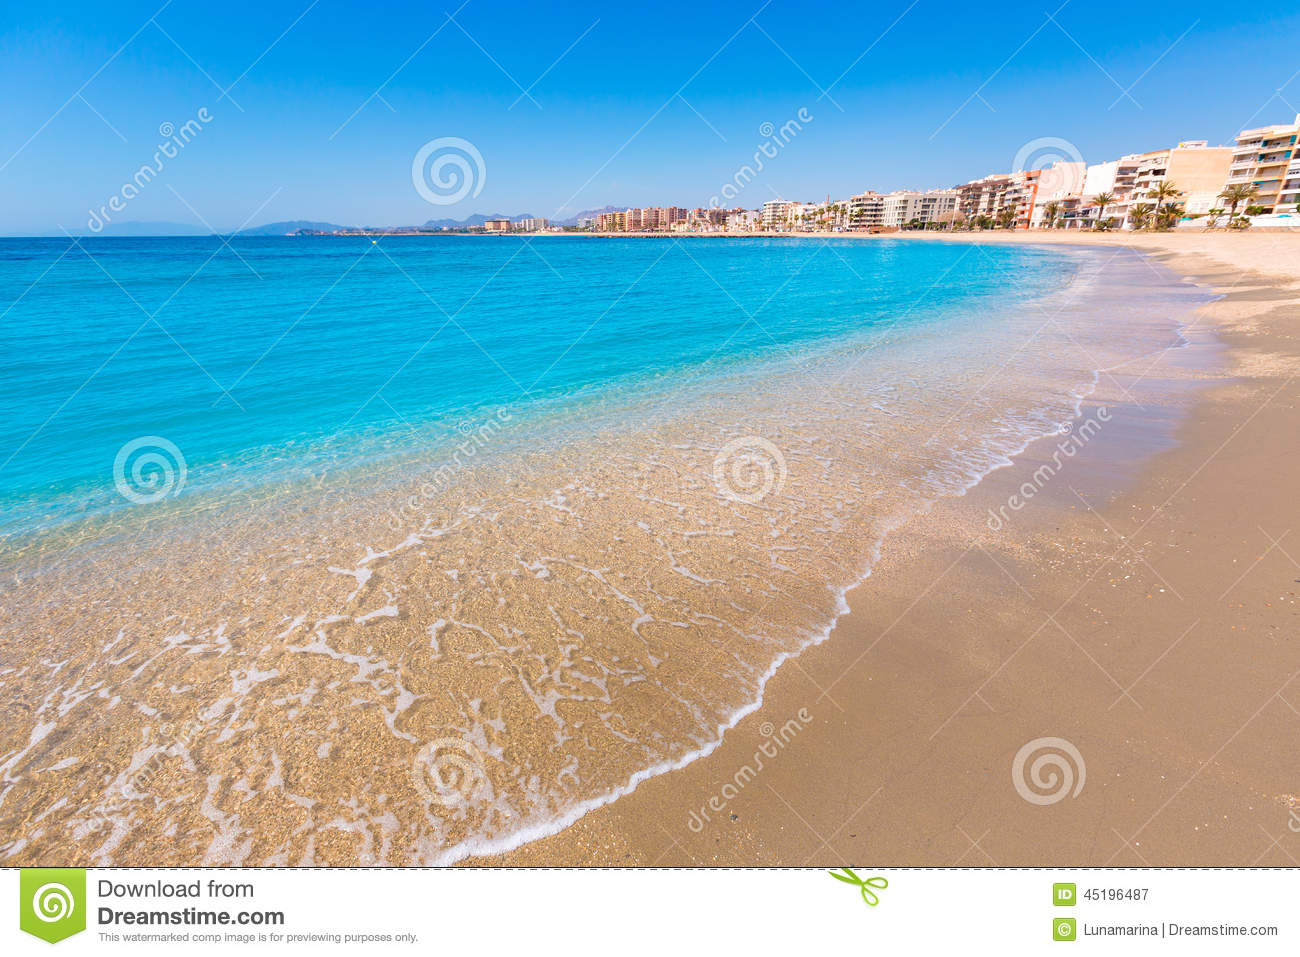 Aguilas Spain  City pictures : Aguilas Poniente Beach Murcia In Spain Stock Photo Image: 45196487